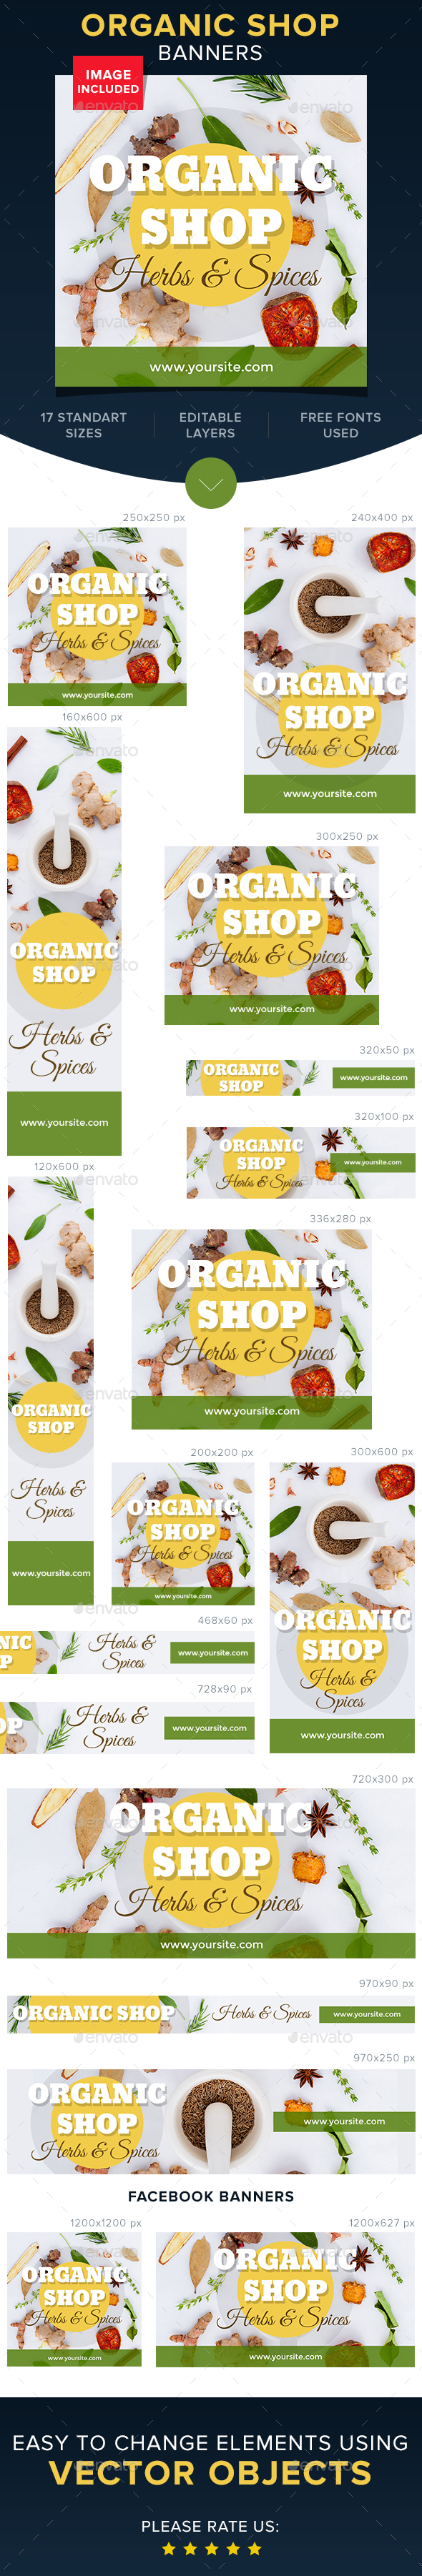 Organic Shop Banners - Banners & Ads Web Elements